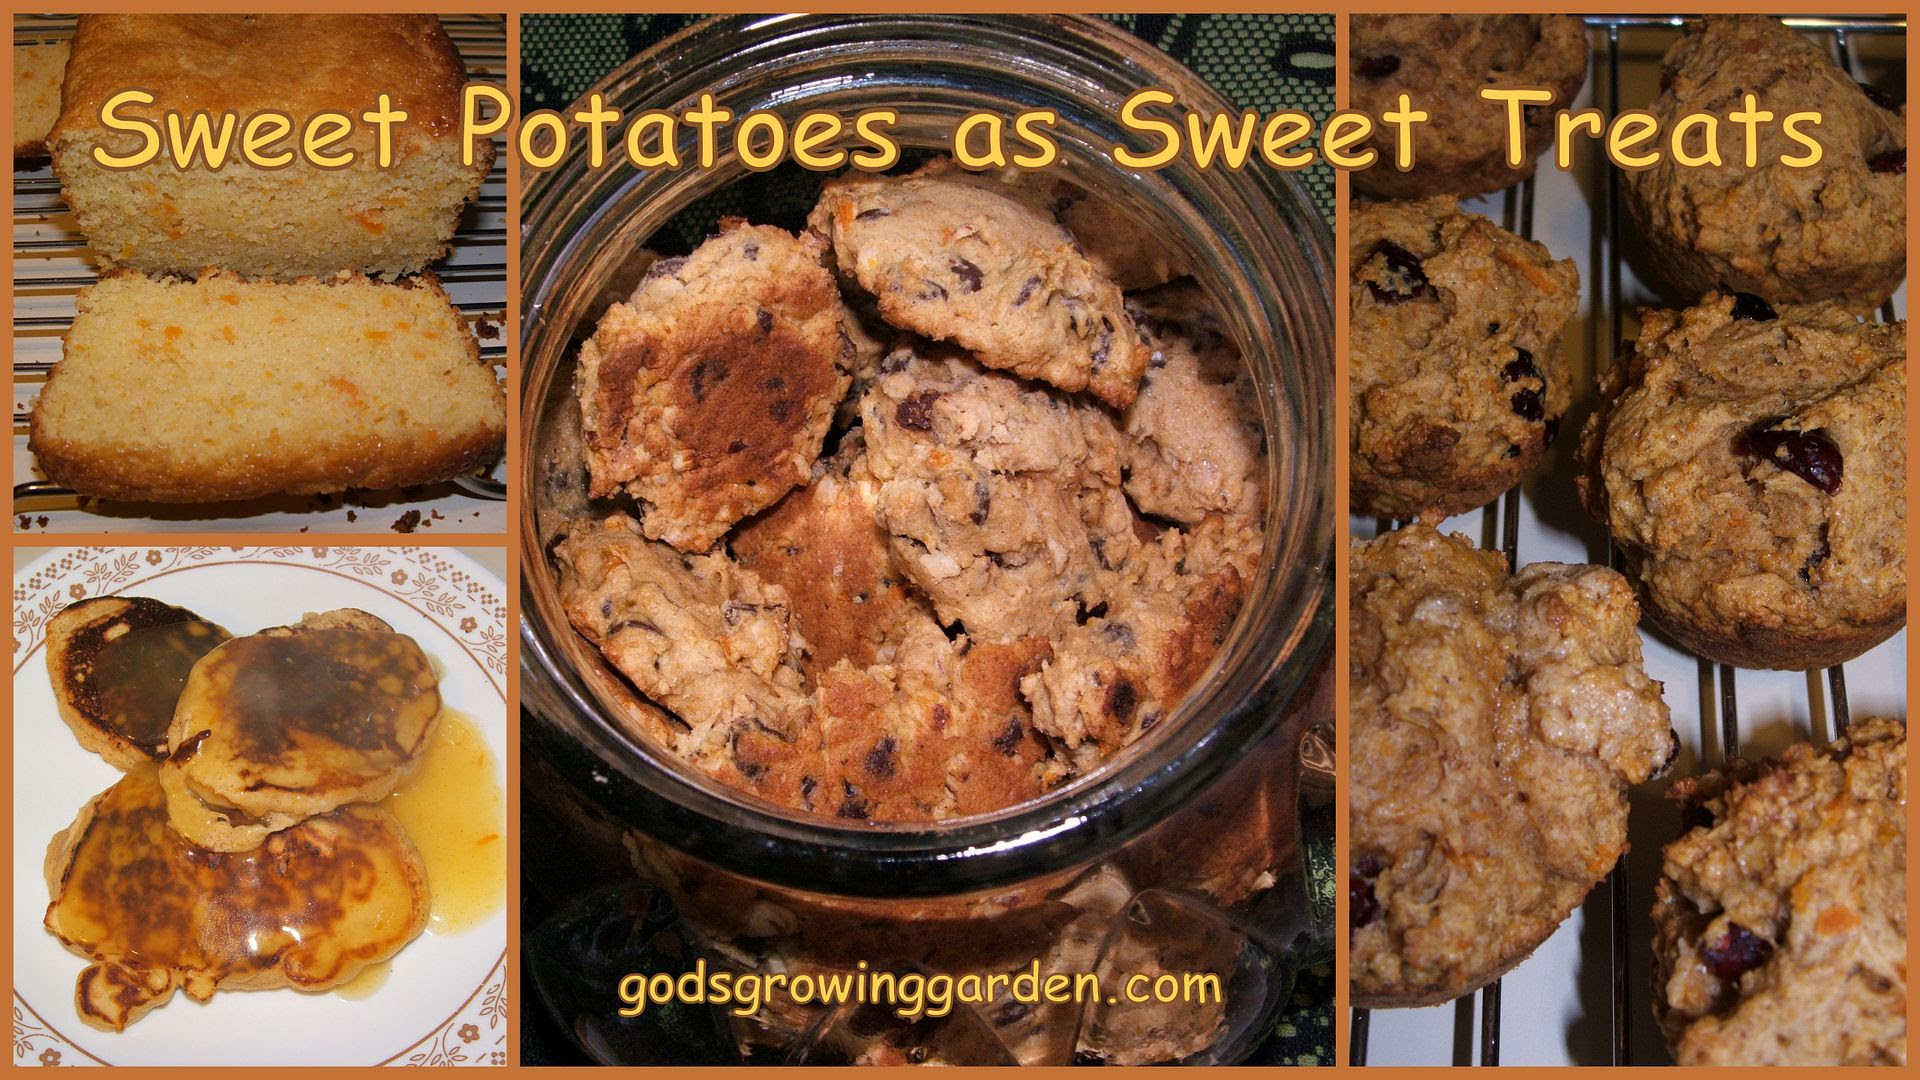 Sweet Potatoes by Angie Ouellette-Tower for godsgrowinggarden.com photo BlogStuff3_zpse7c2c412.jpg